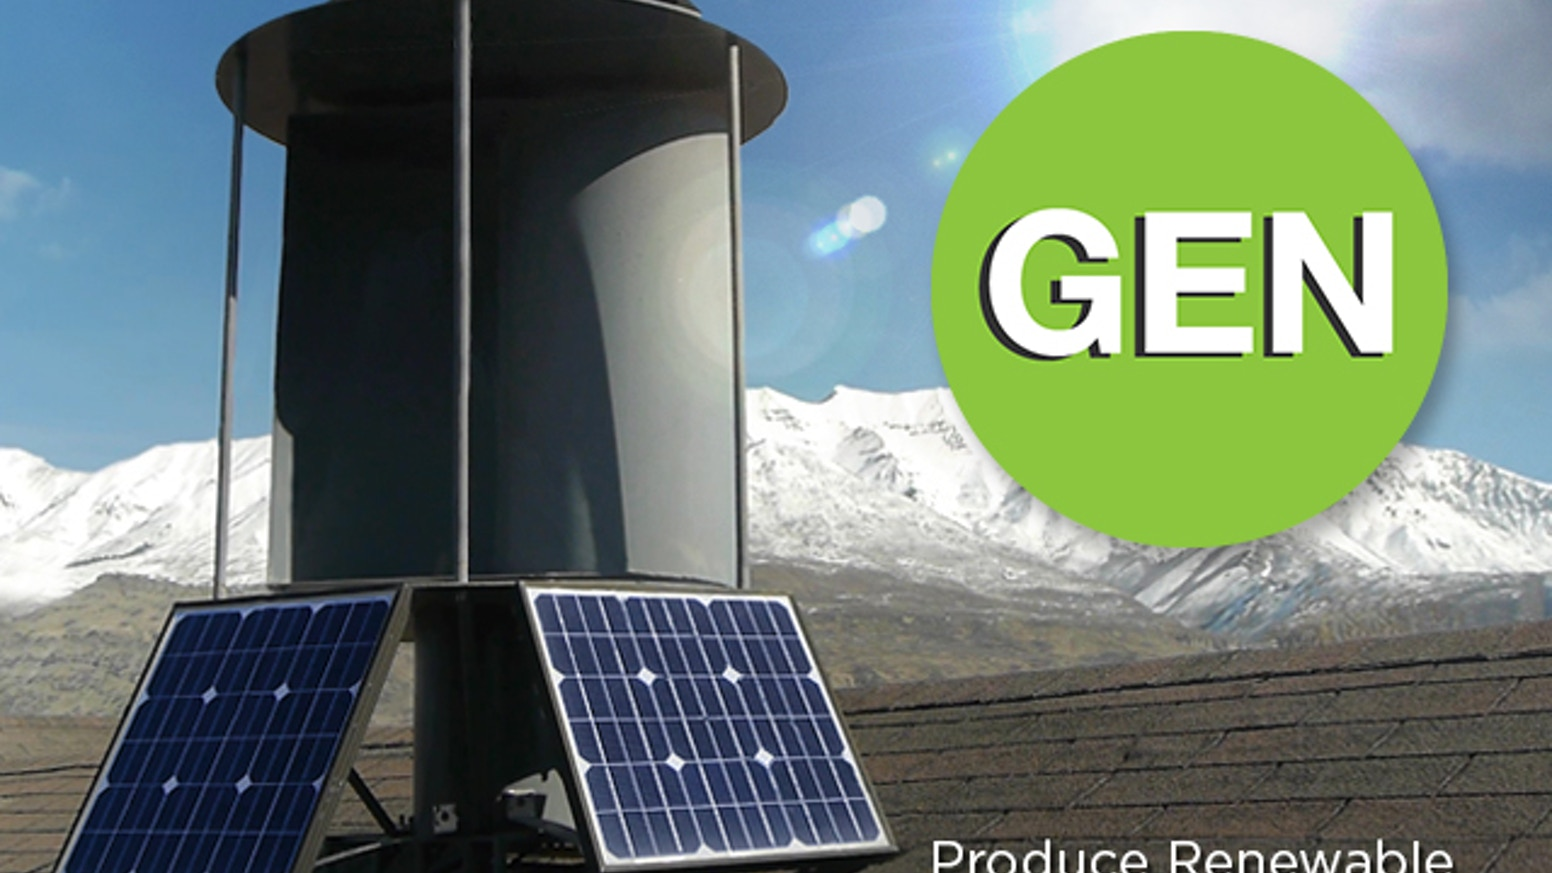 Save 30-70% on your electric bill with the world's first patent pending solar and wind renewable energy generator.